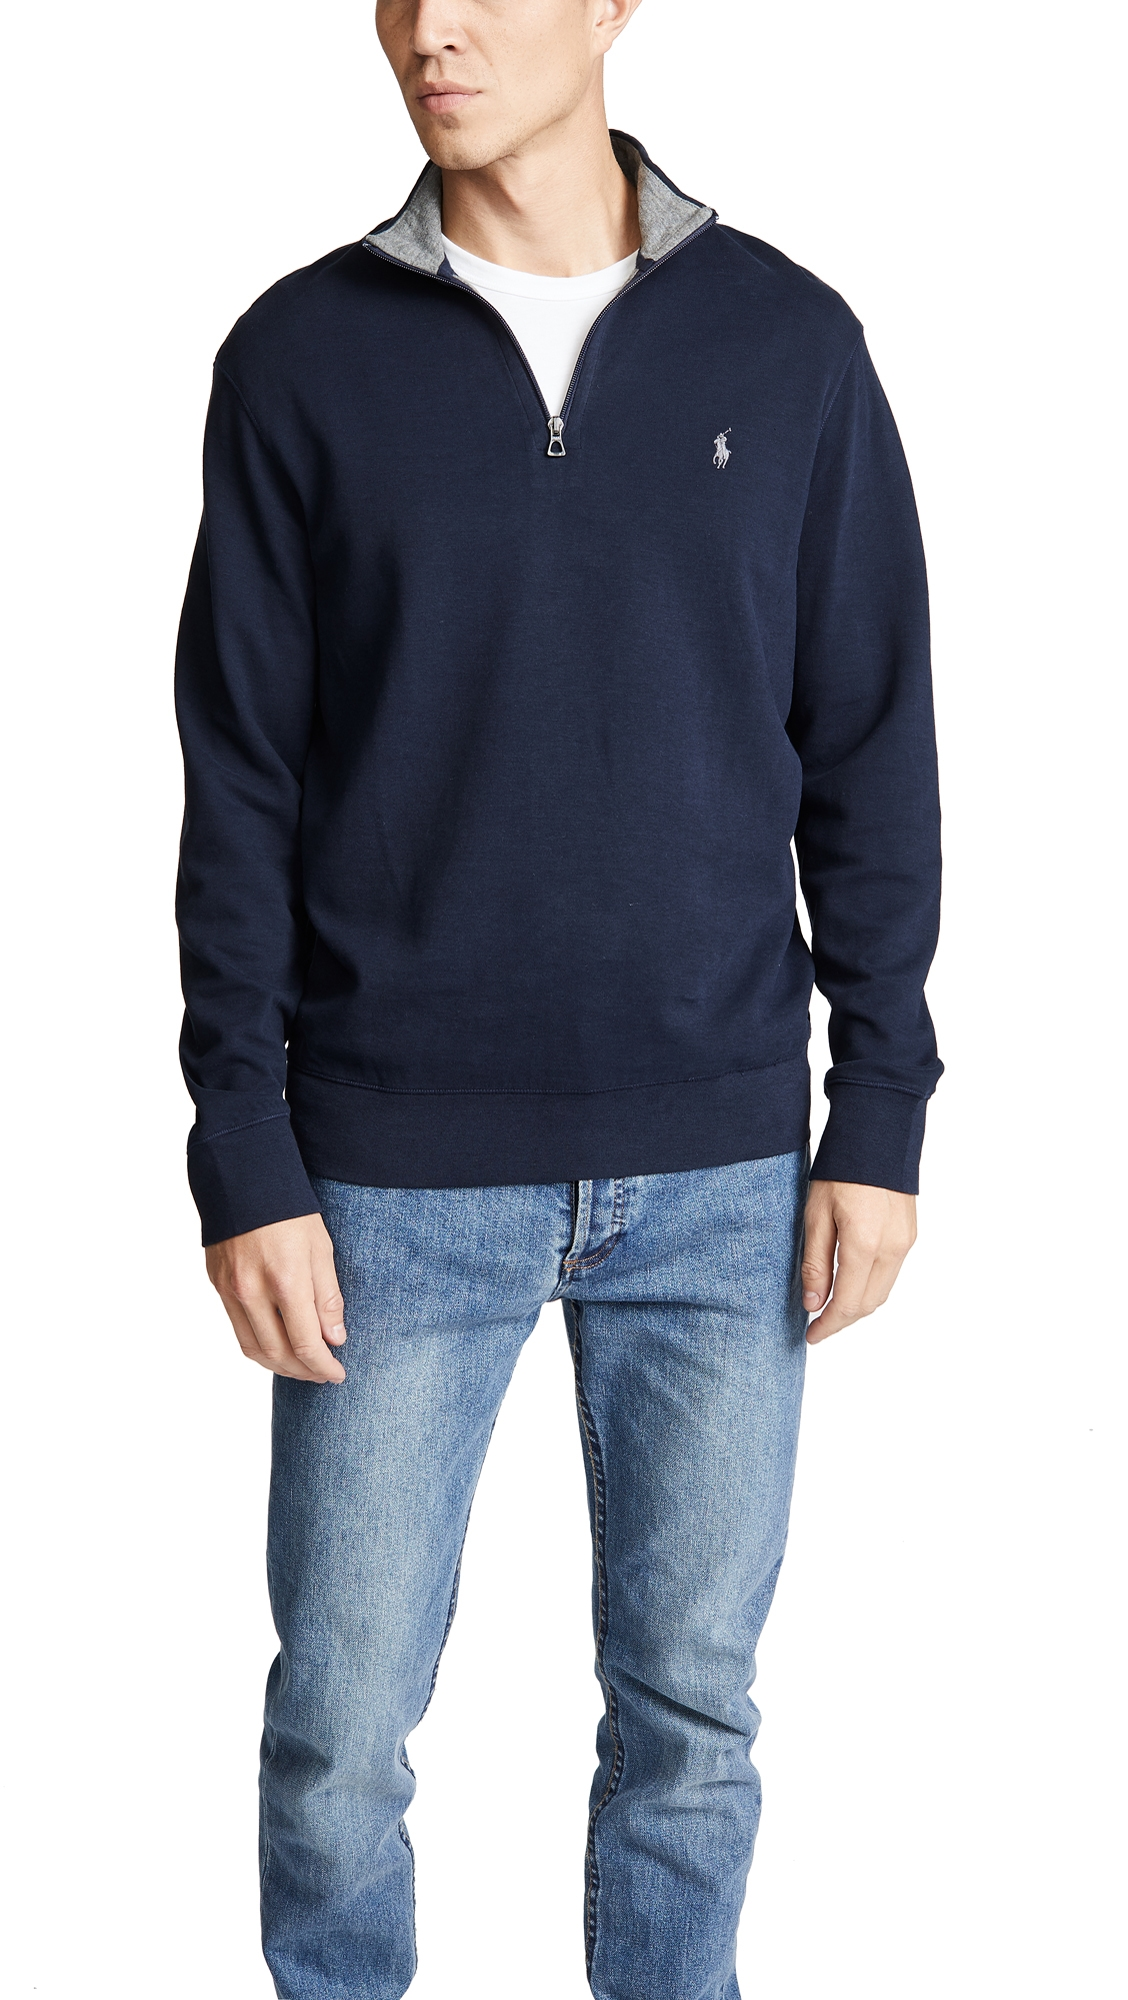 POLO RALPH LAUREN DOUBLE KNIT ZIP JERSEY